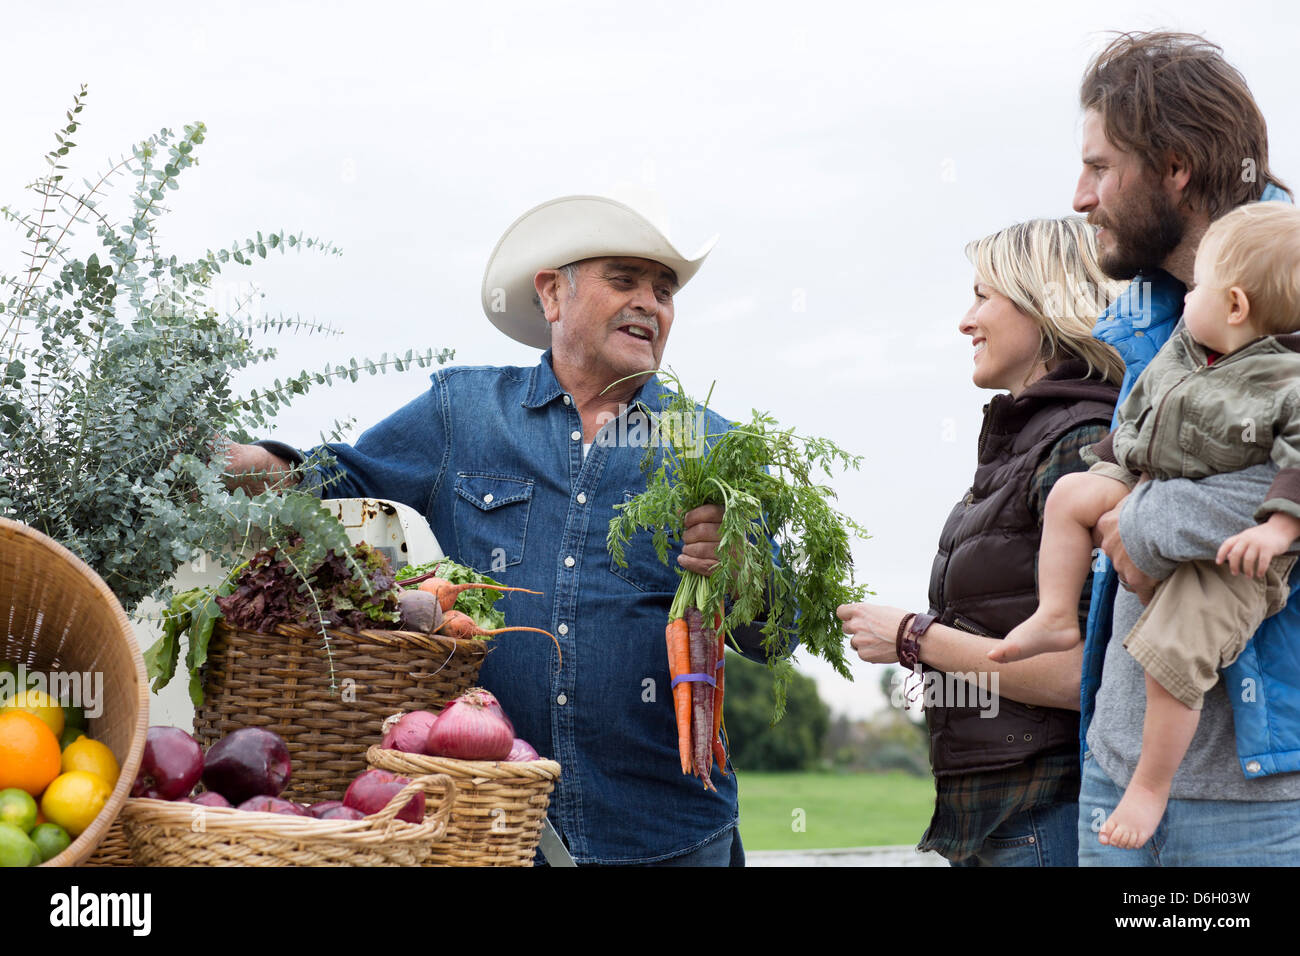 Family shopping at farmer's market Photo Stock